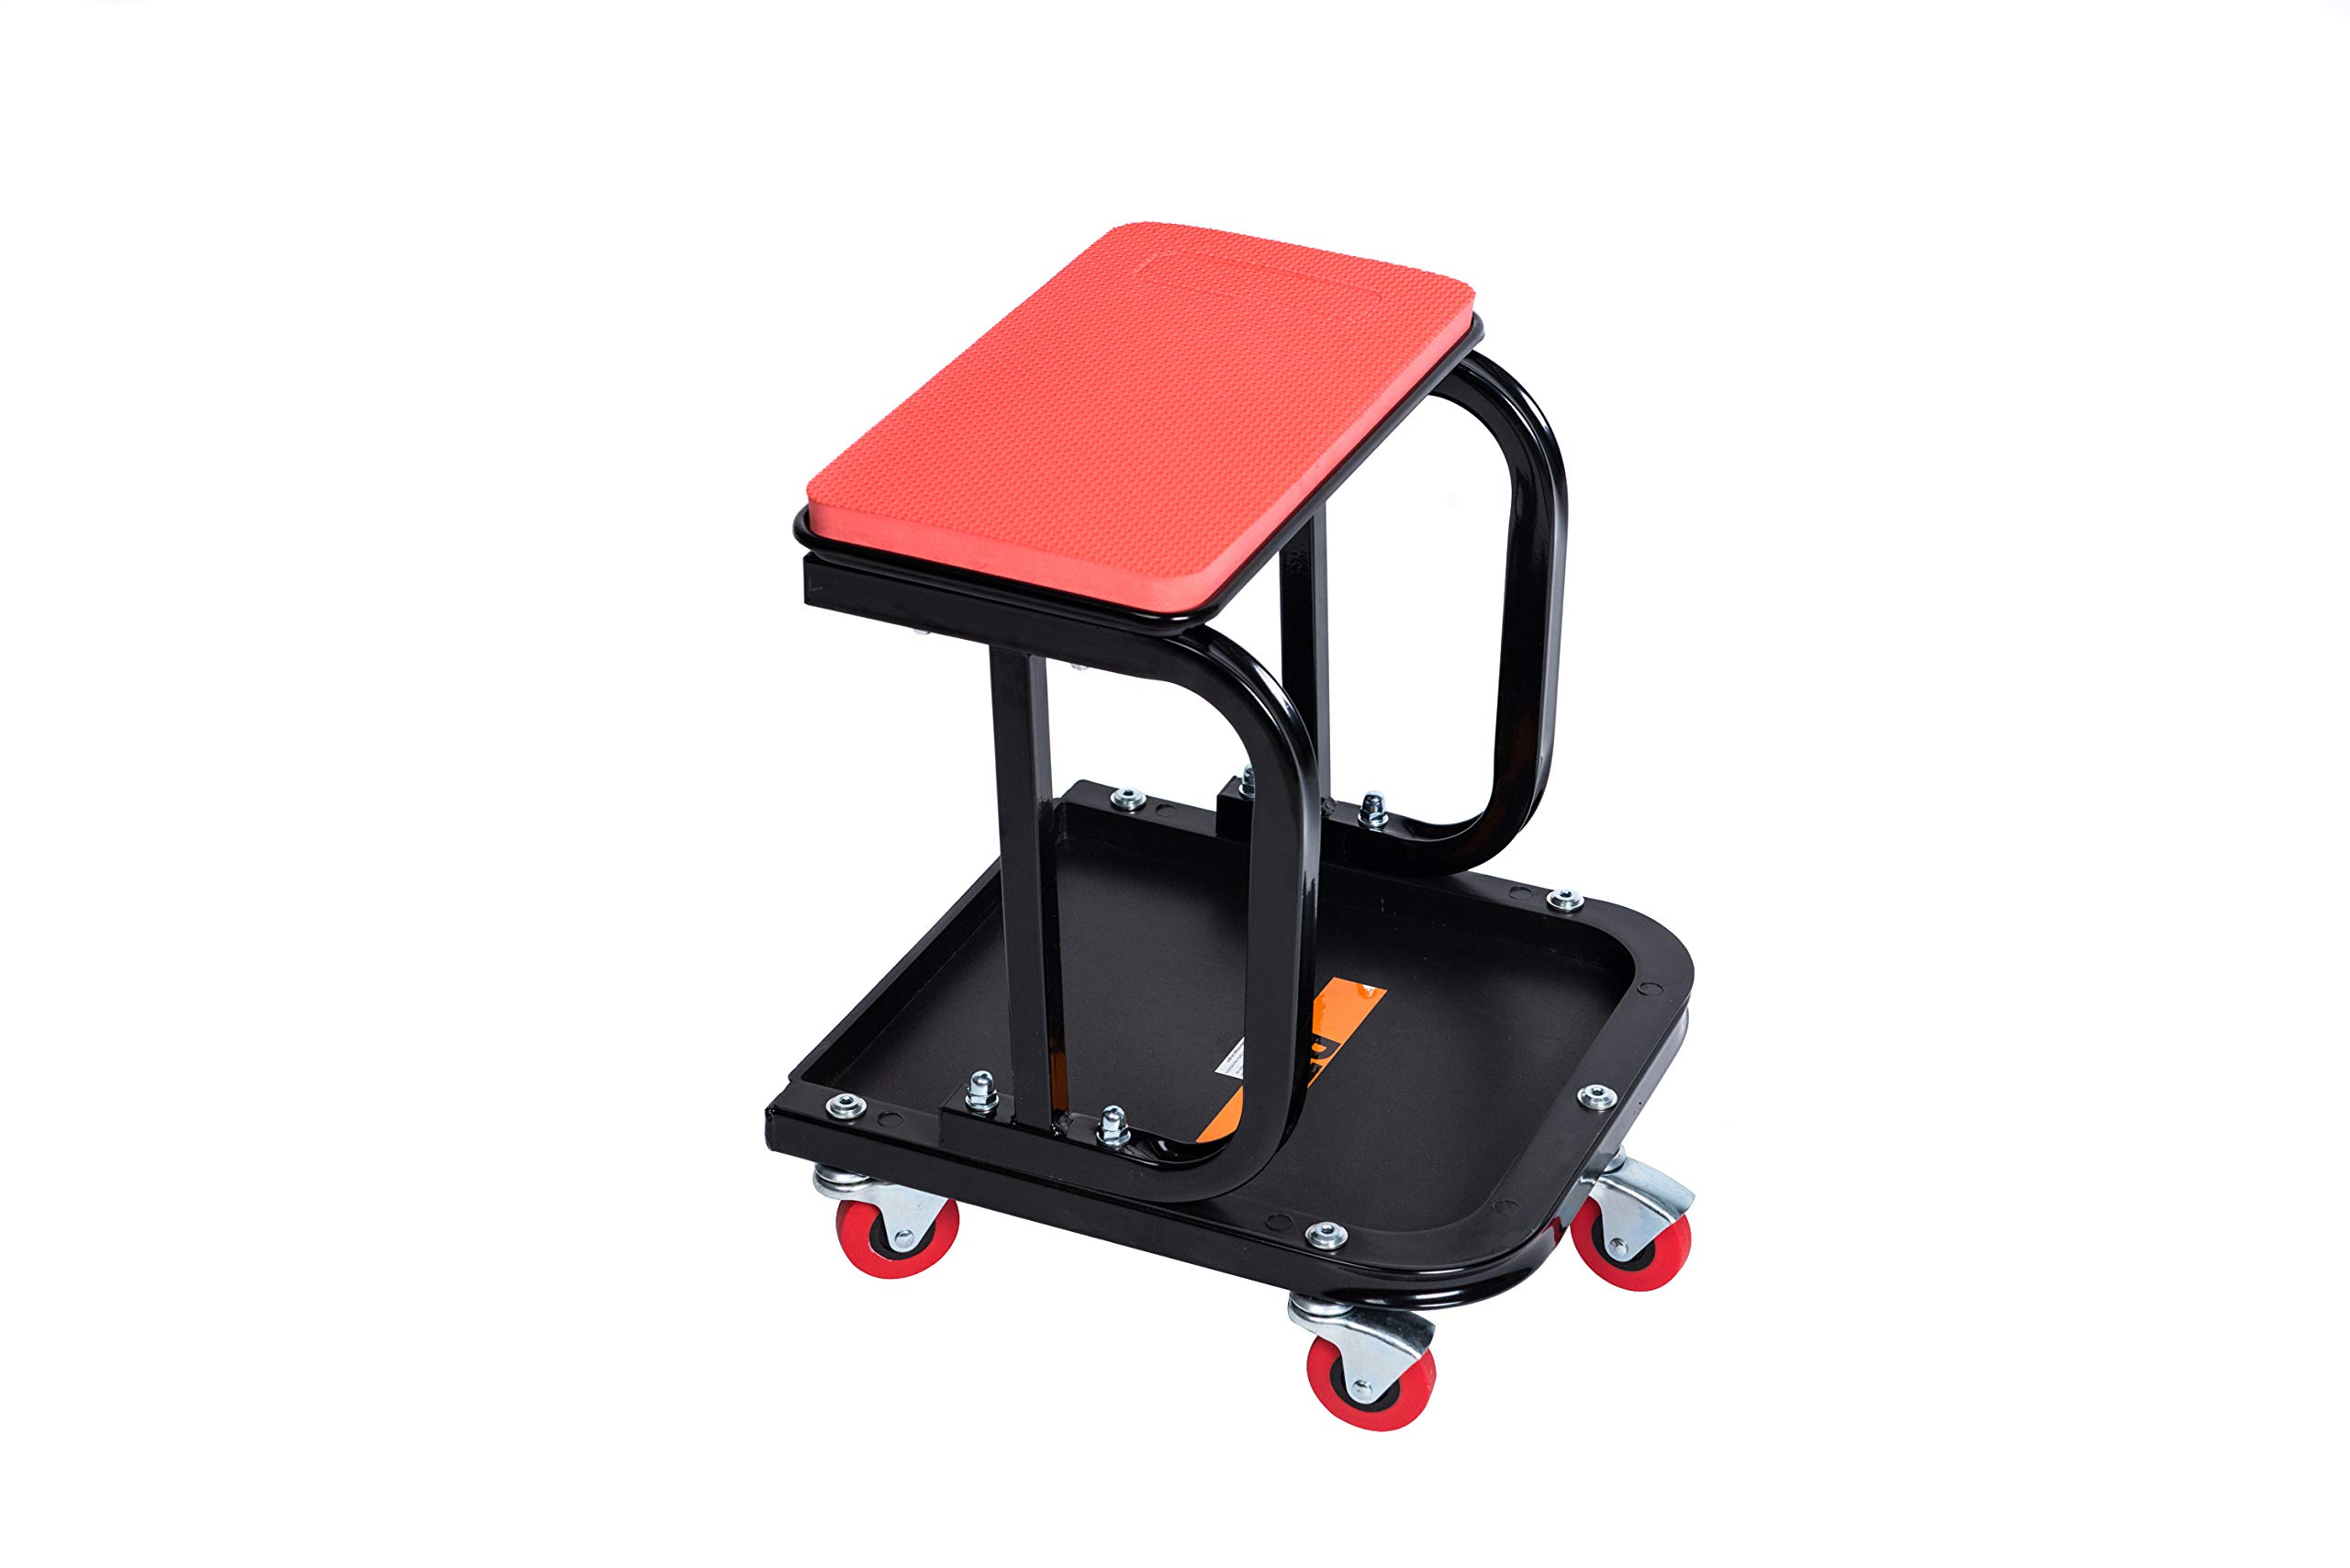 RTJ 300 lbs Capacity Mechanic Roller Seat with Removeable Cushion D-Frame Rolling Stool, Red